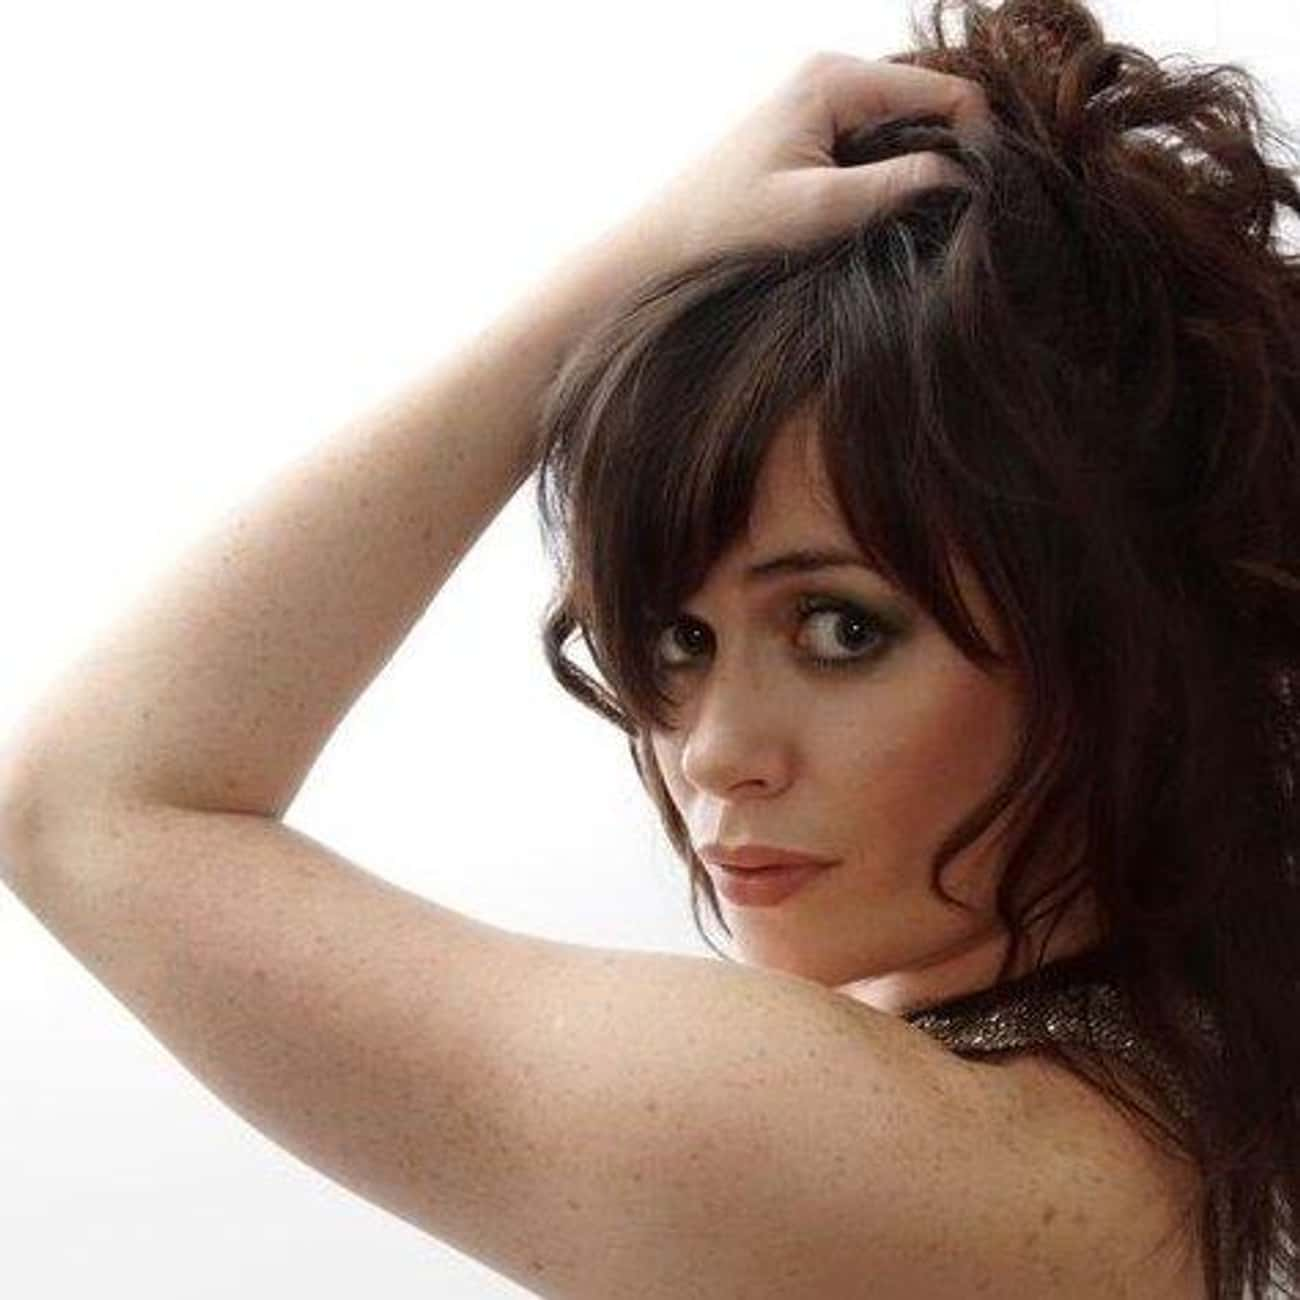 Eve Myles is listed (or ranked) 1 on the list The Most Stunning Welsh Actresses